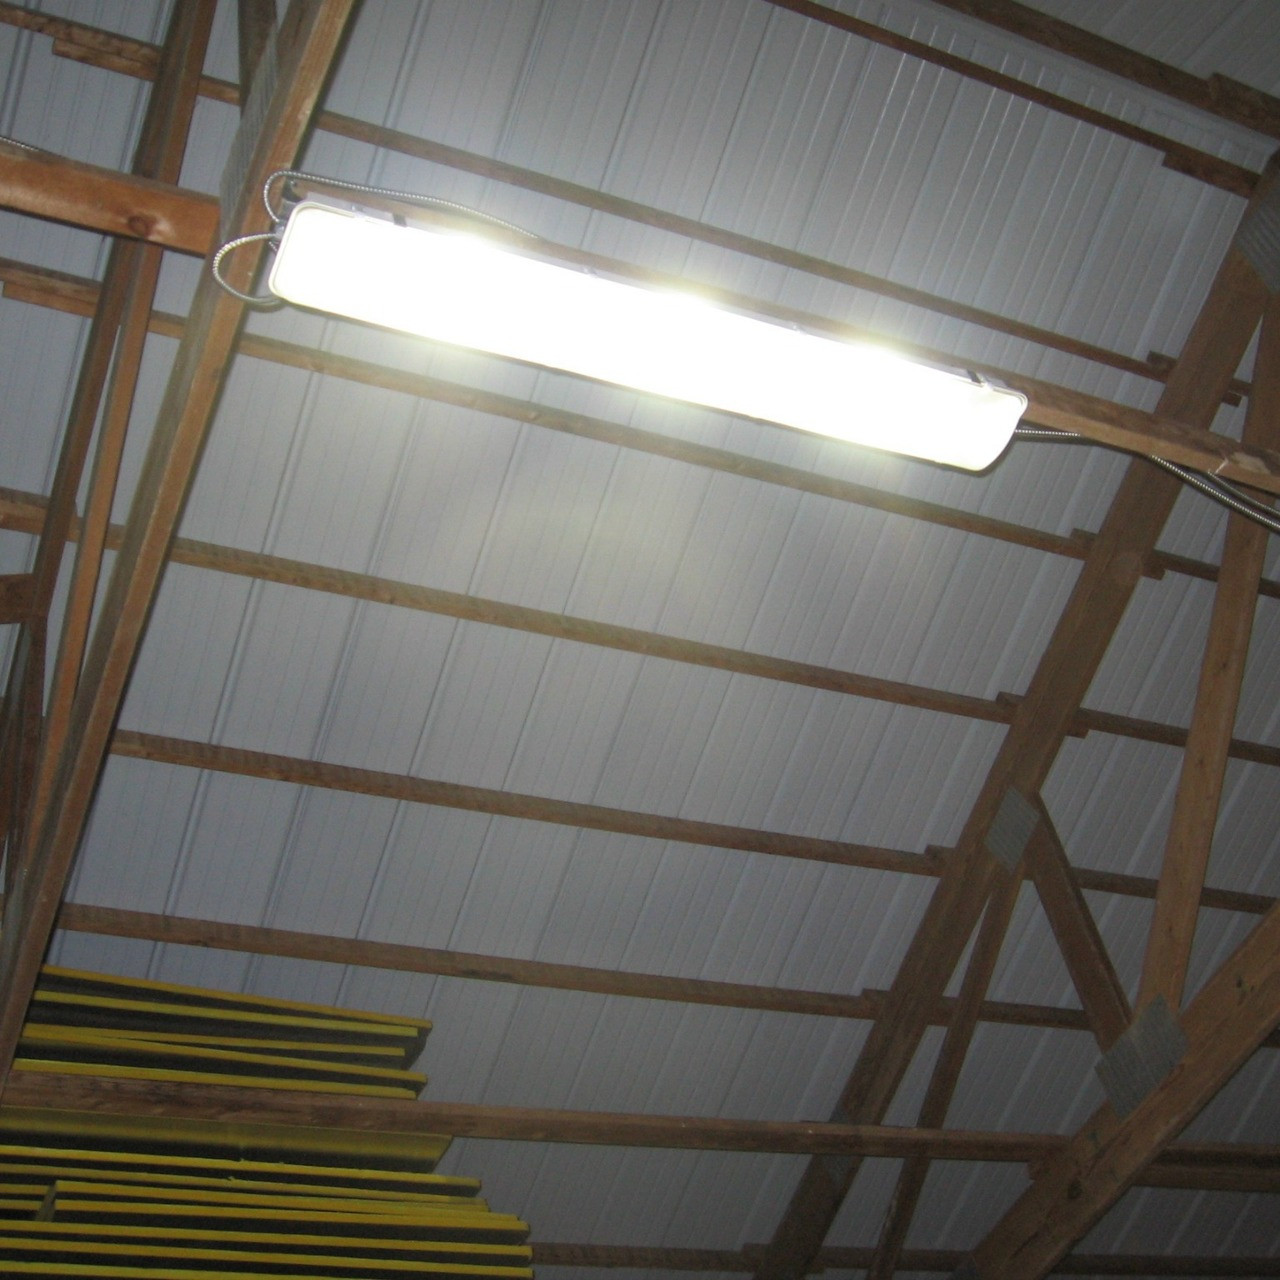 80w led low bay light fixtures mounted on the beams of the lumber warehouse